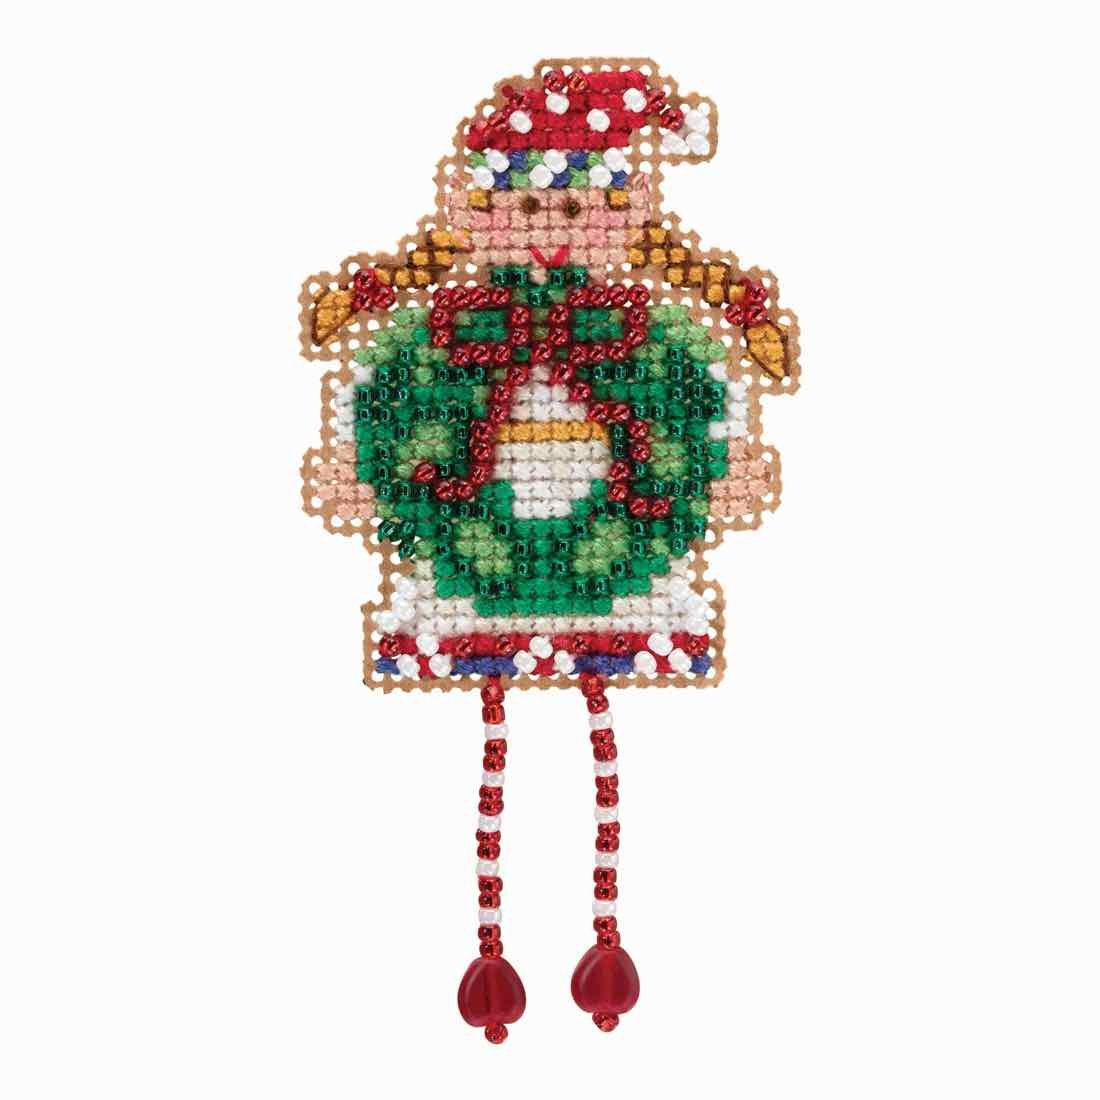 Holli Elf Beaded Counted Cross Stitch Ornament Kit Mill Hill 2018 Winter Holiday MH181832